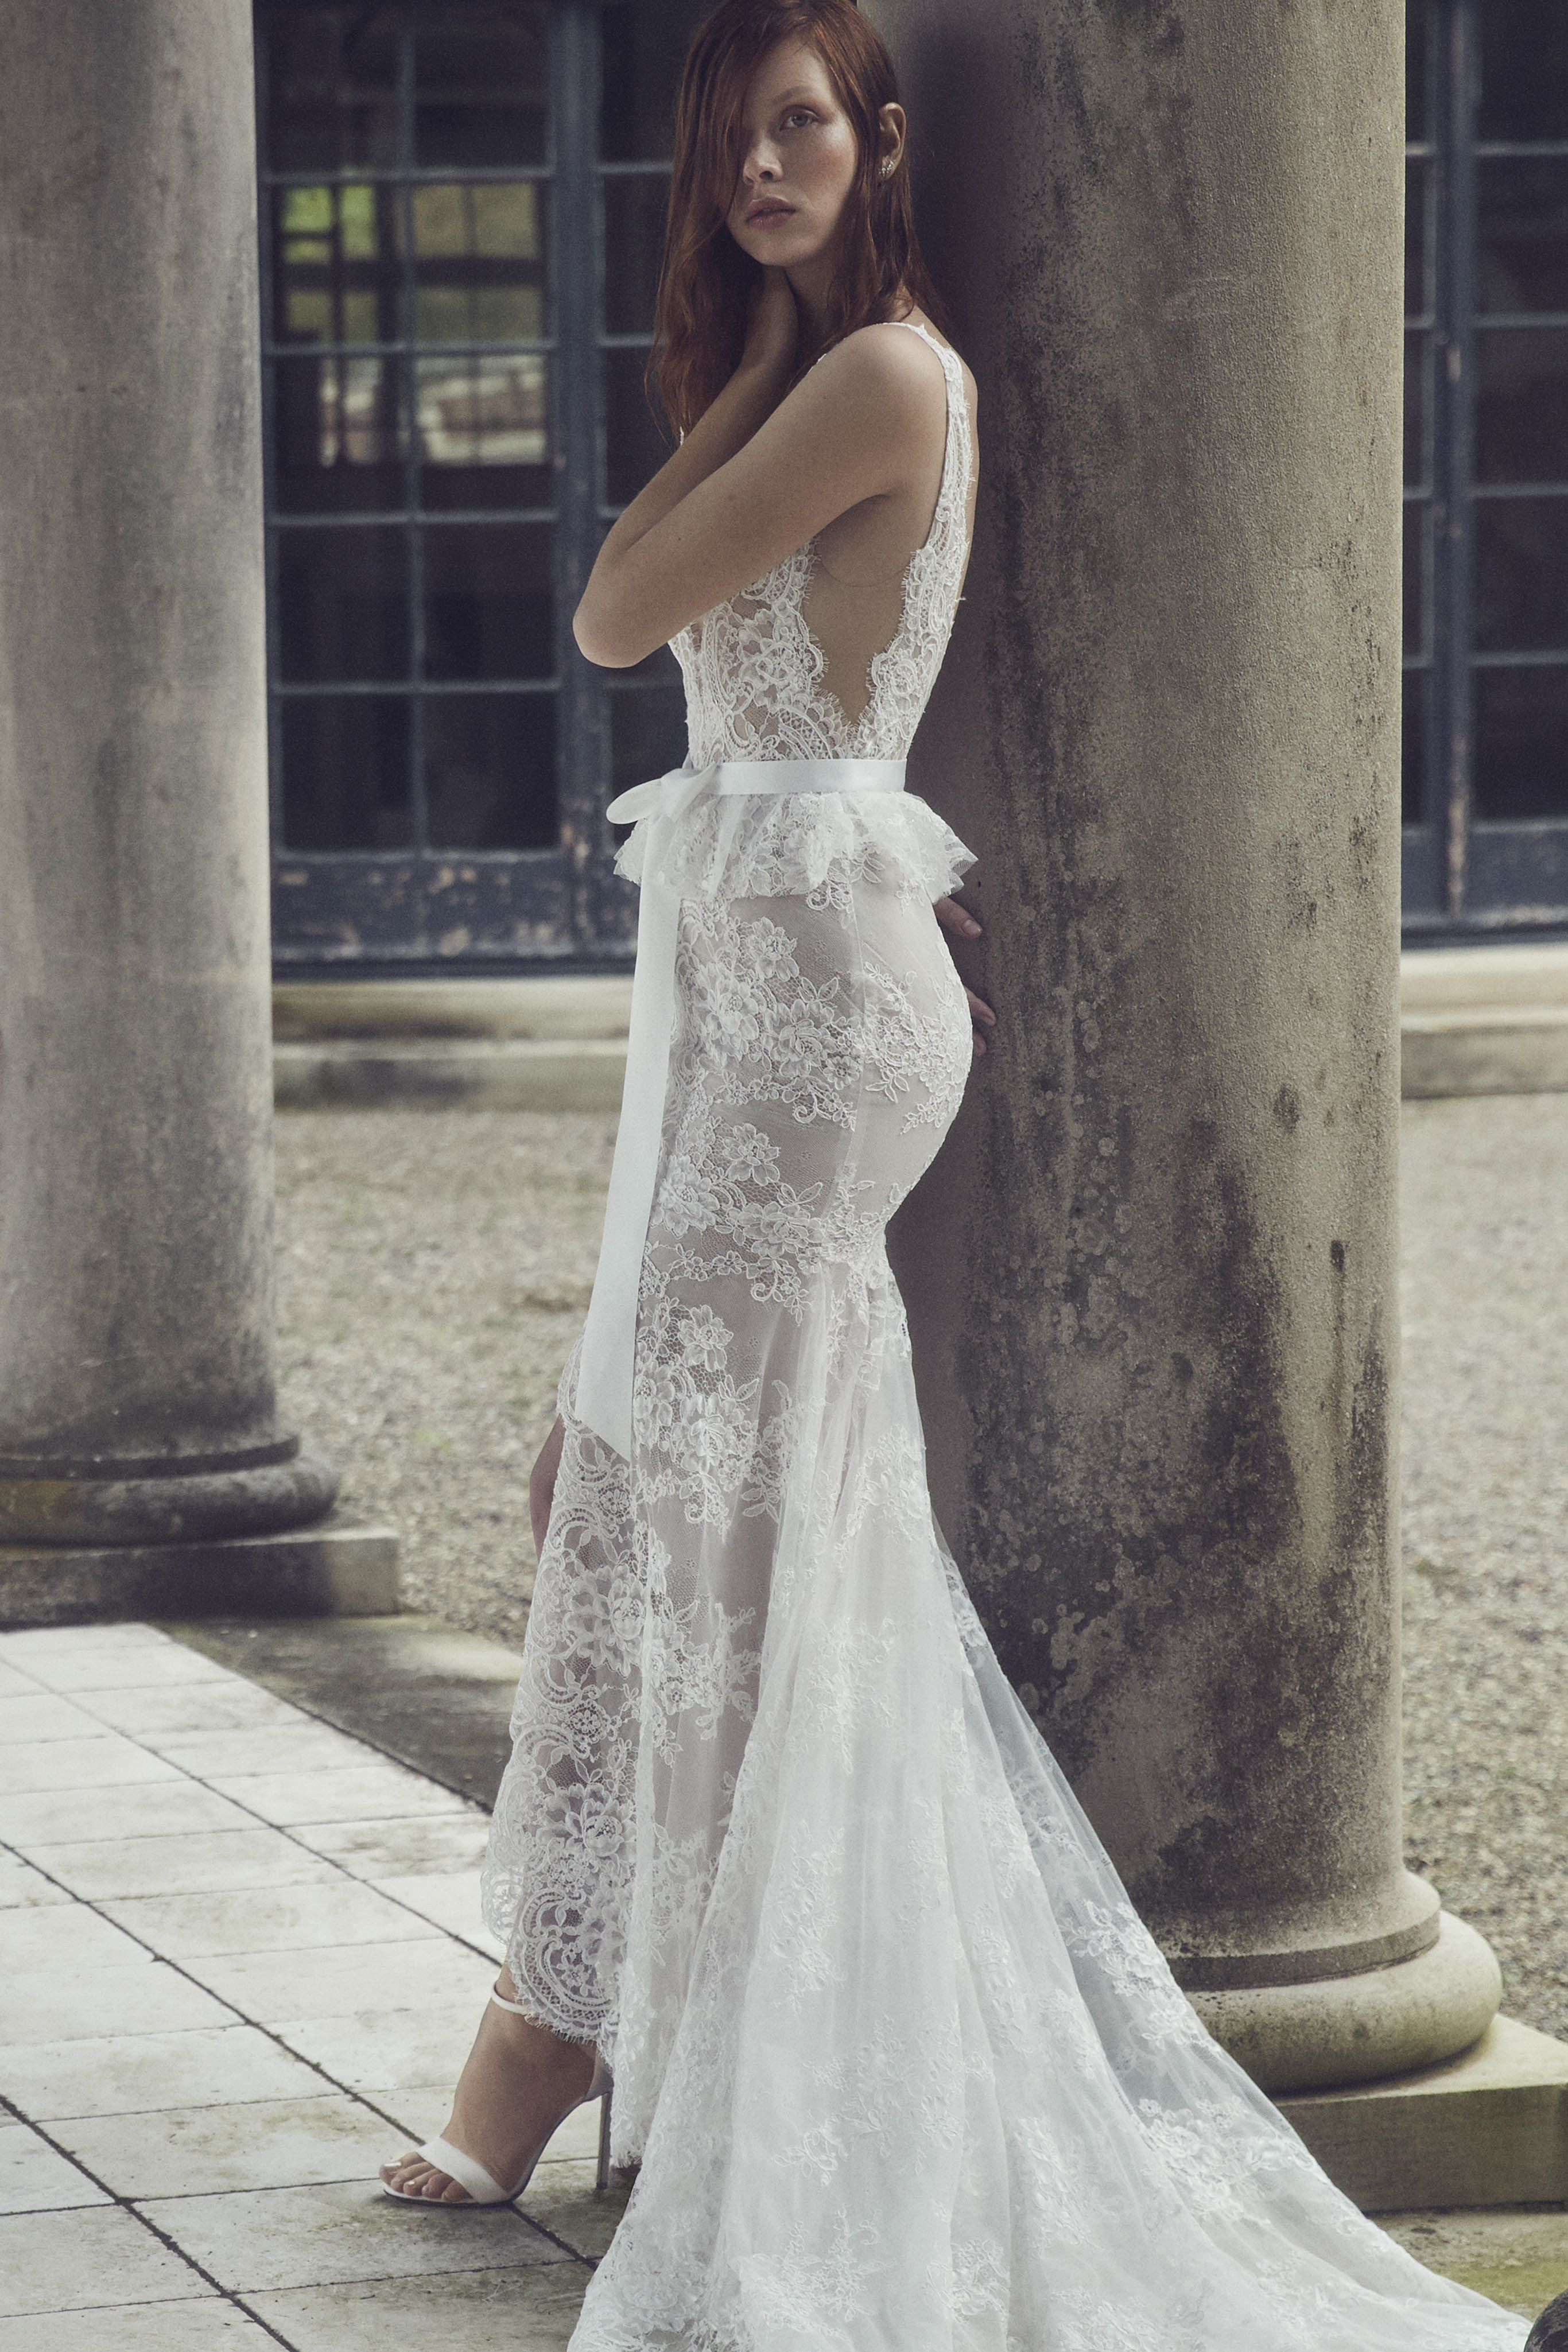 dd411a4a447 30 Stunning Wedding Dresses Every 2019 Bride Needs to See